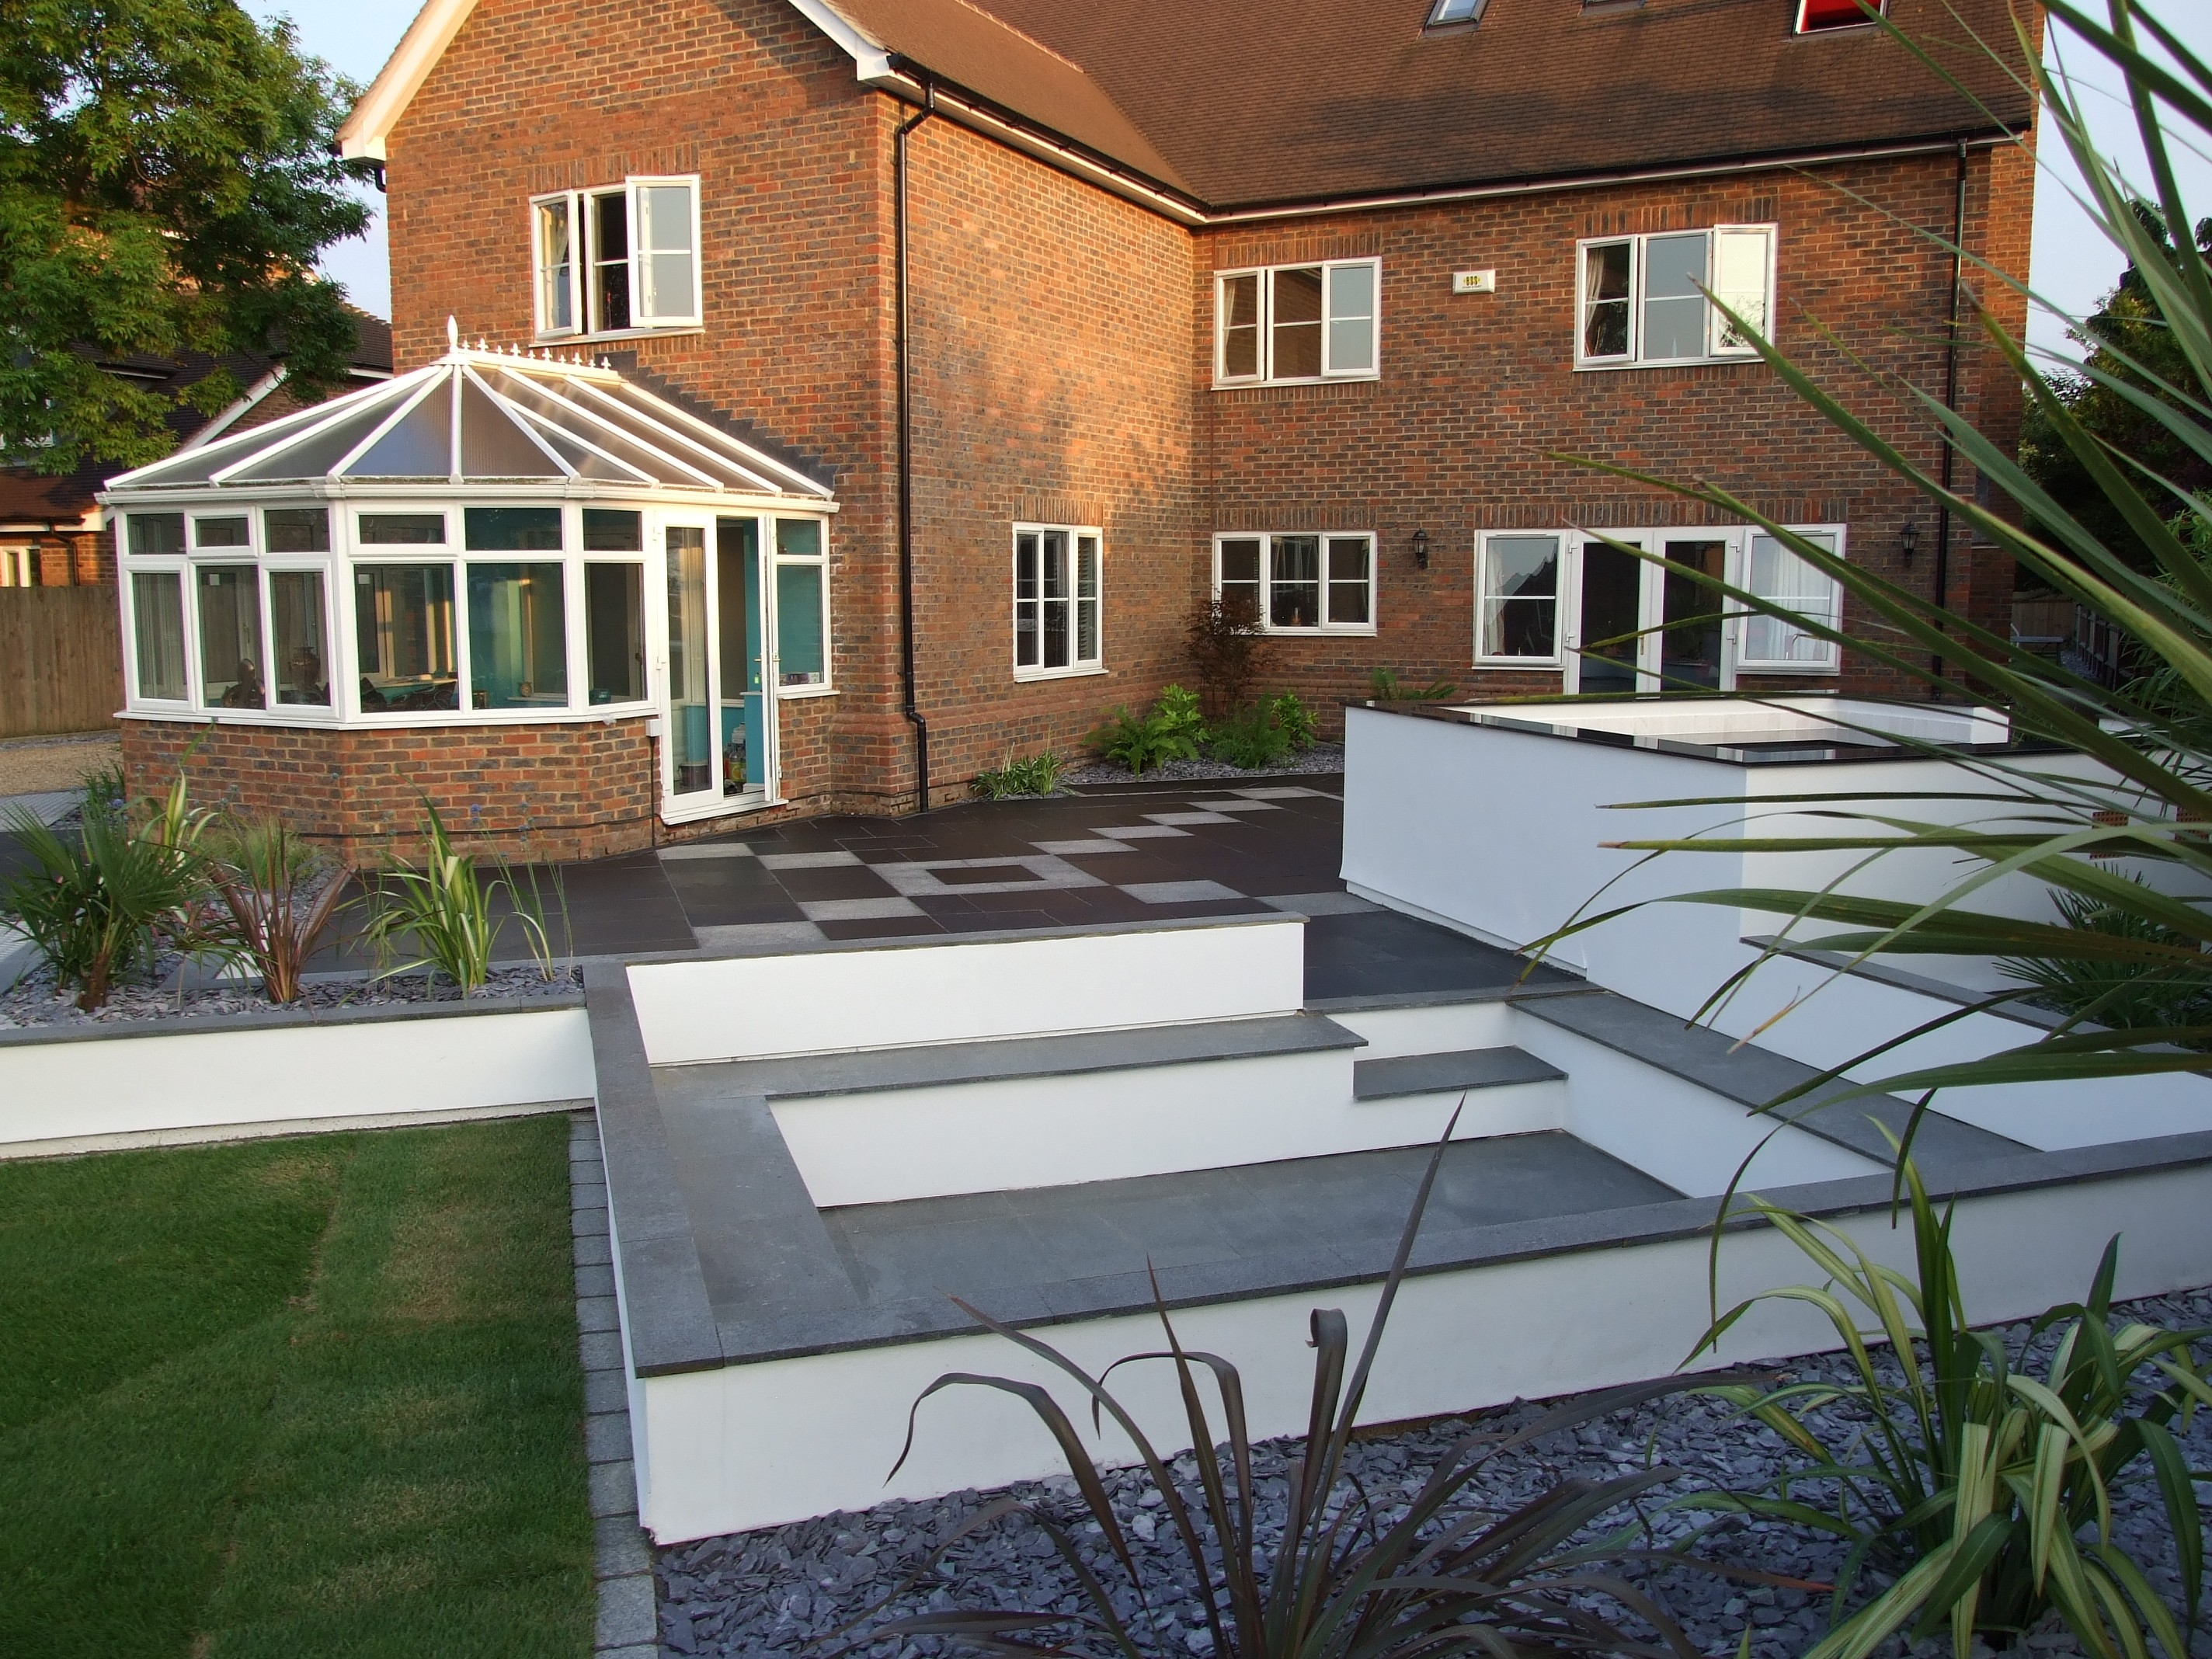 image of garden makeovers showing granite fire pit, outdoor kitchen and stunning granite and limestone paving